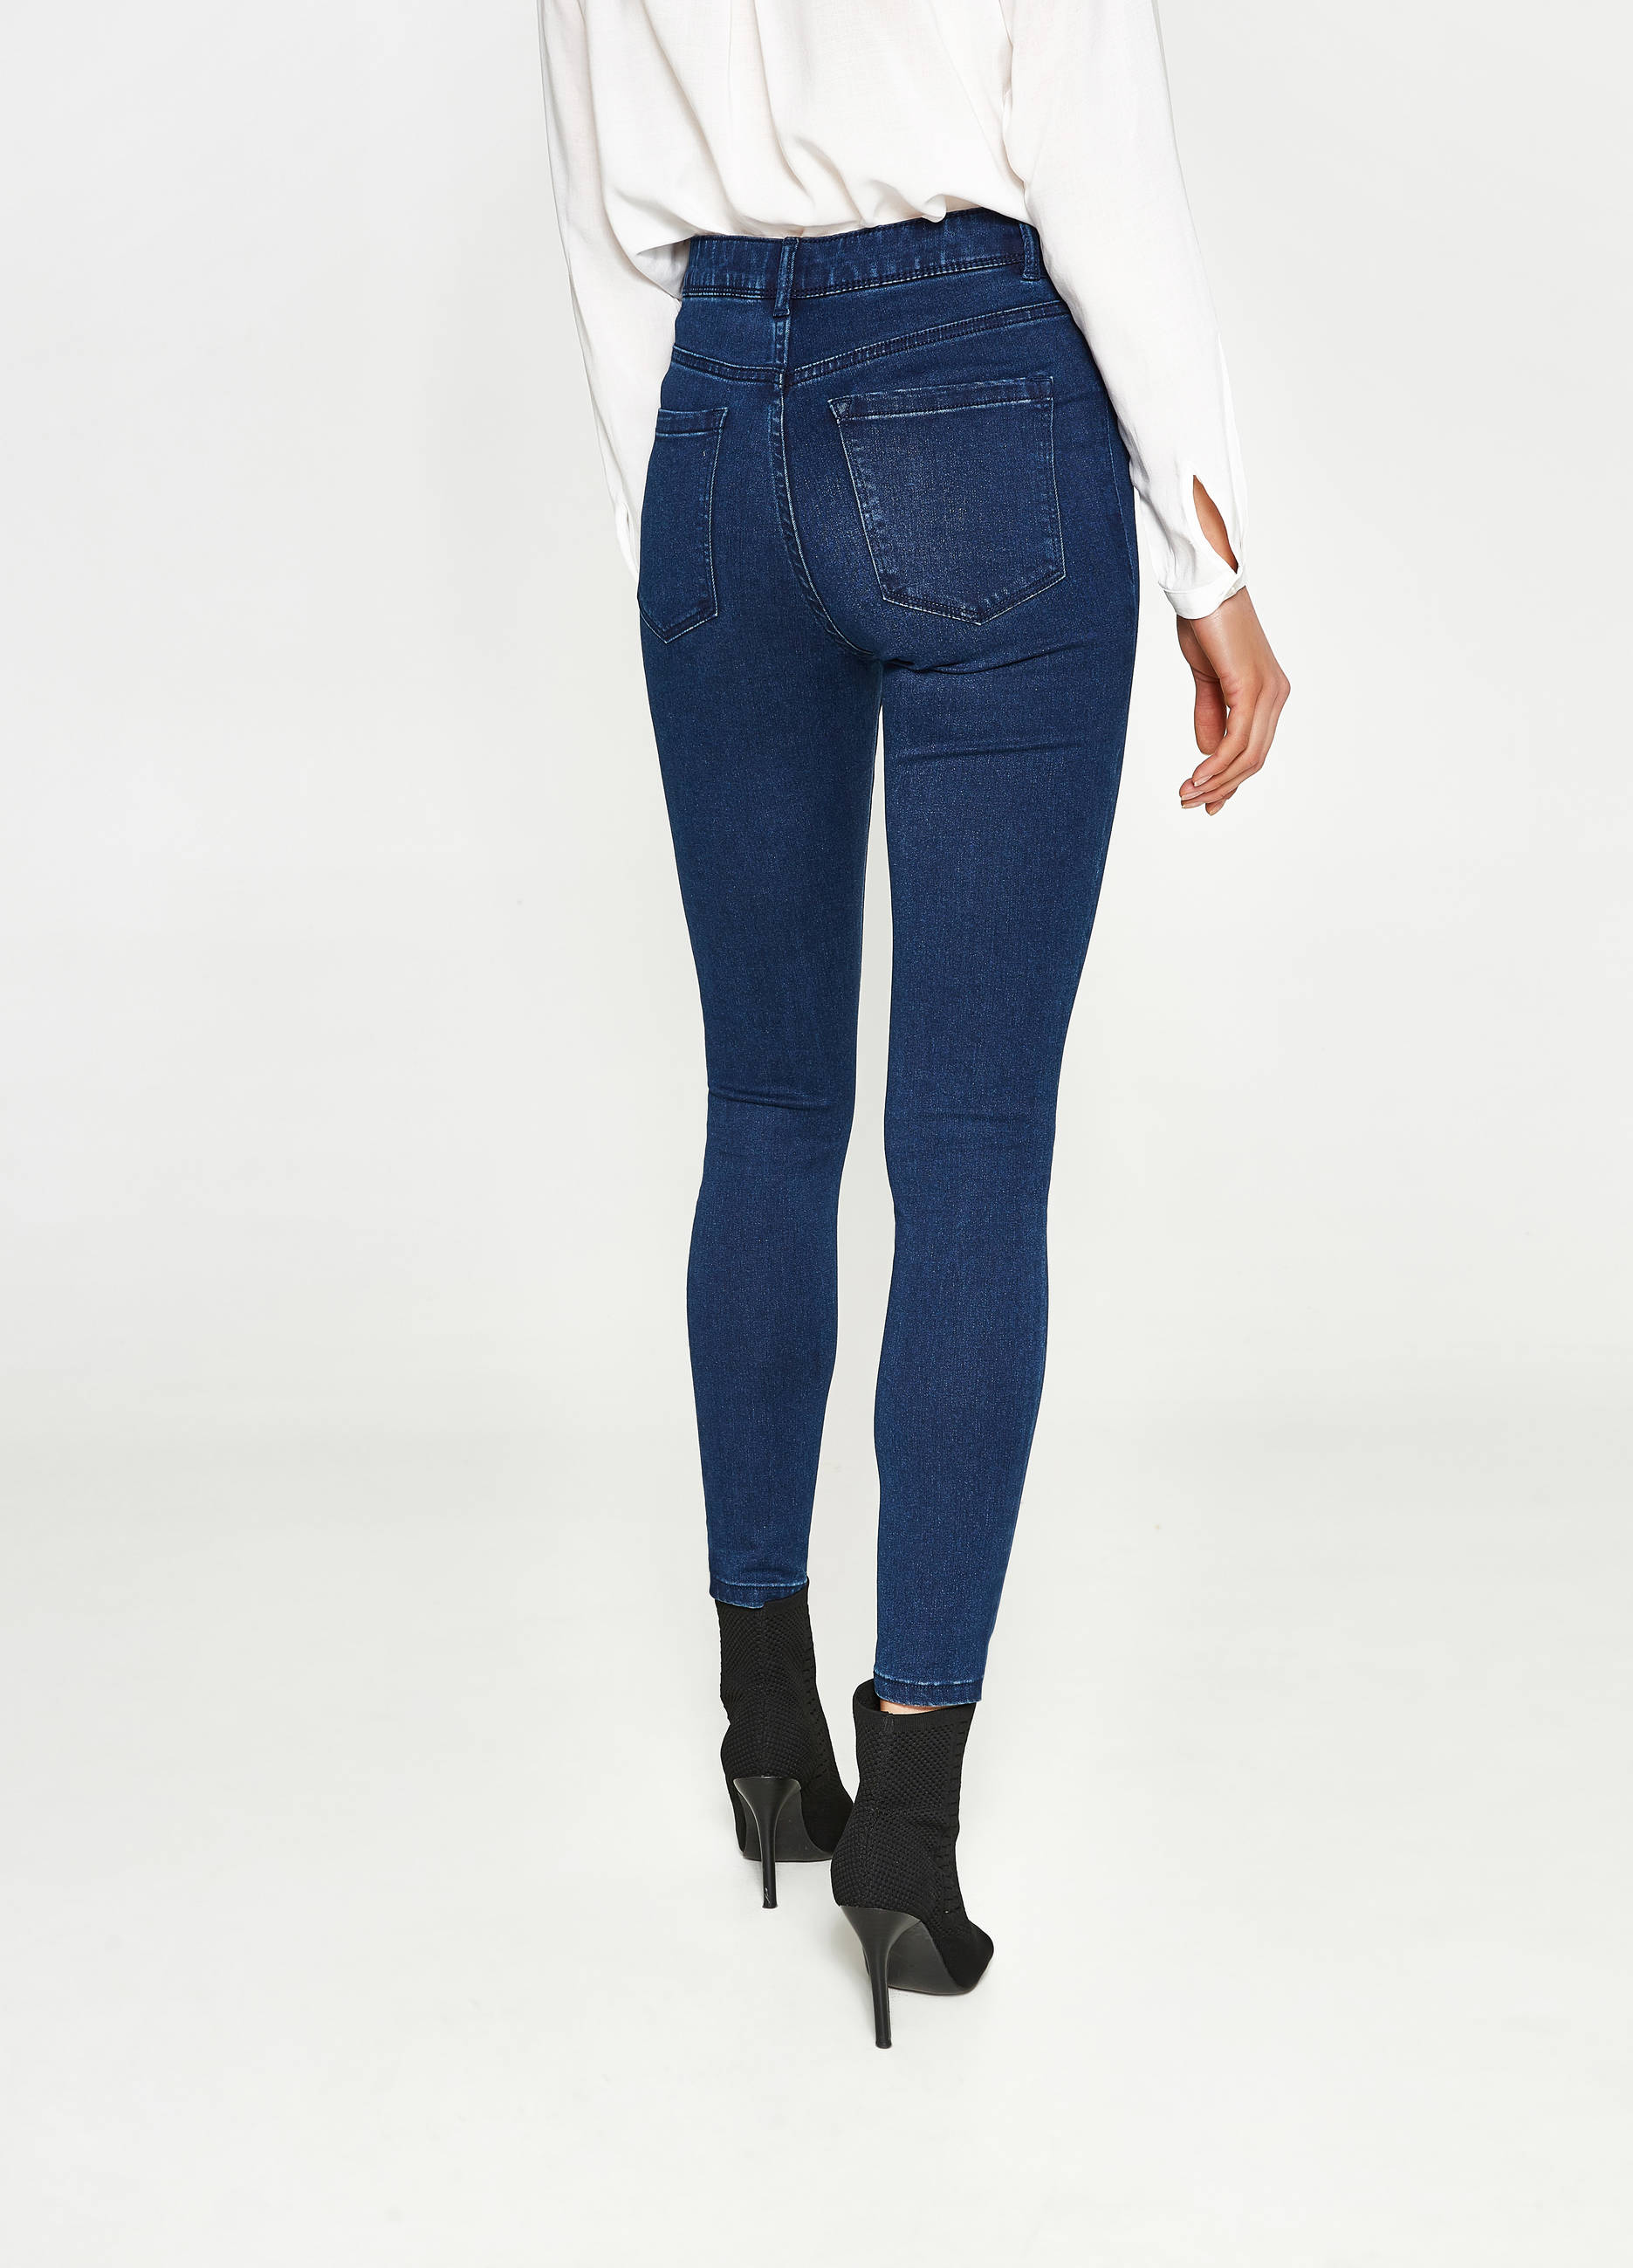 Aug 02, · One is more skinier than the other, mostly for those really super skinny peope. Try going to the store and trying on the pairs you like in the different styles and sizes and see which one fits you best and most ciproprescription.ga: Resolved.